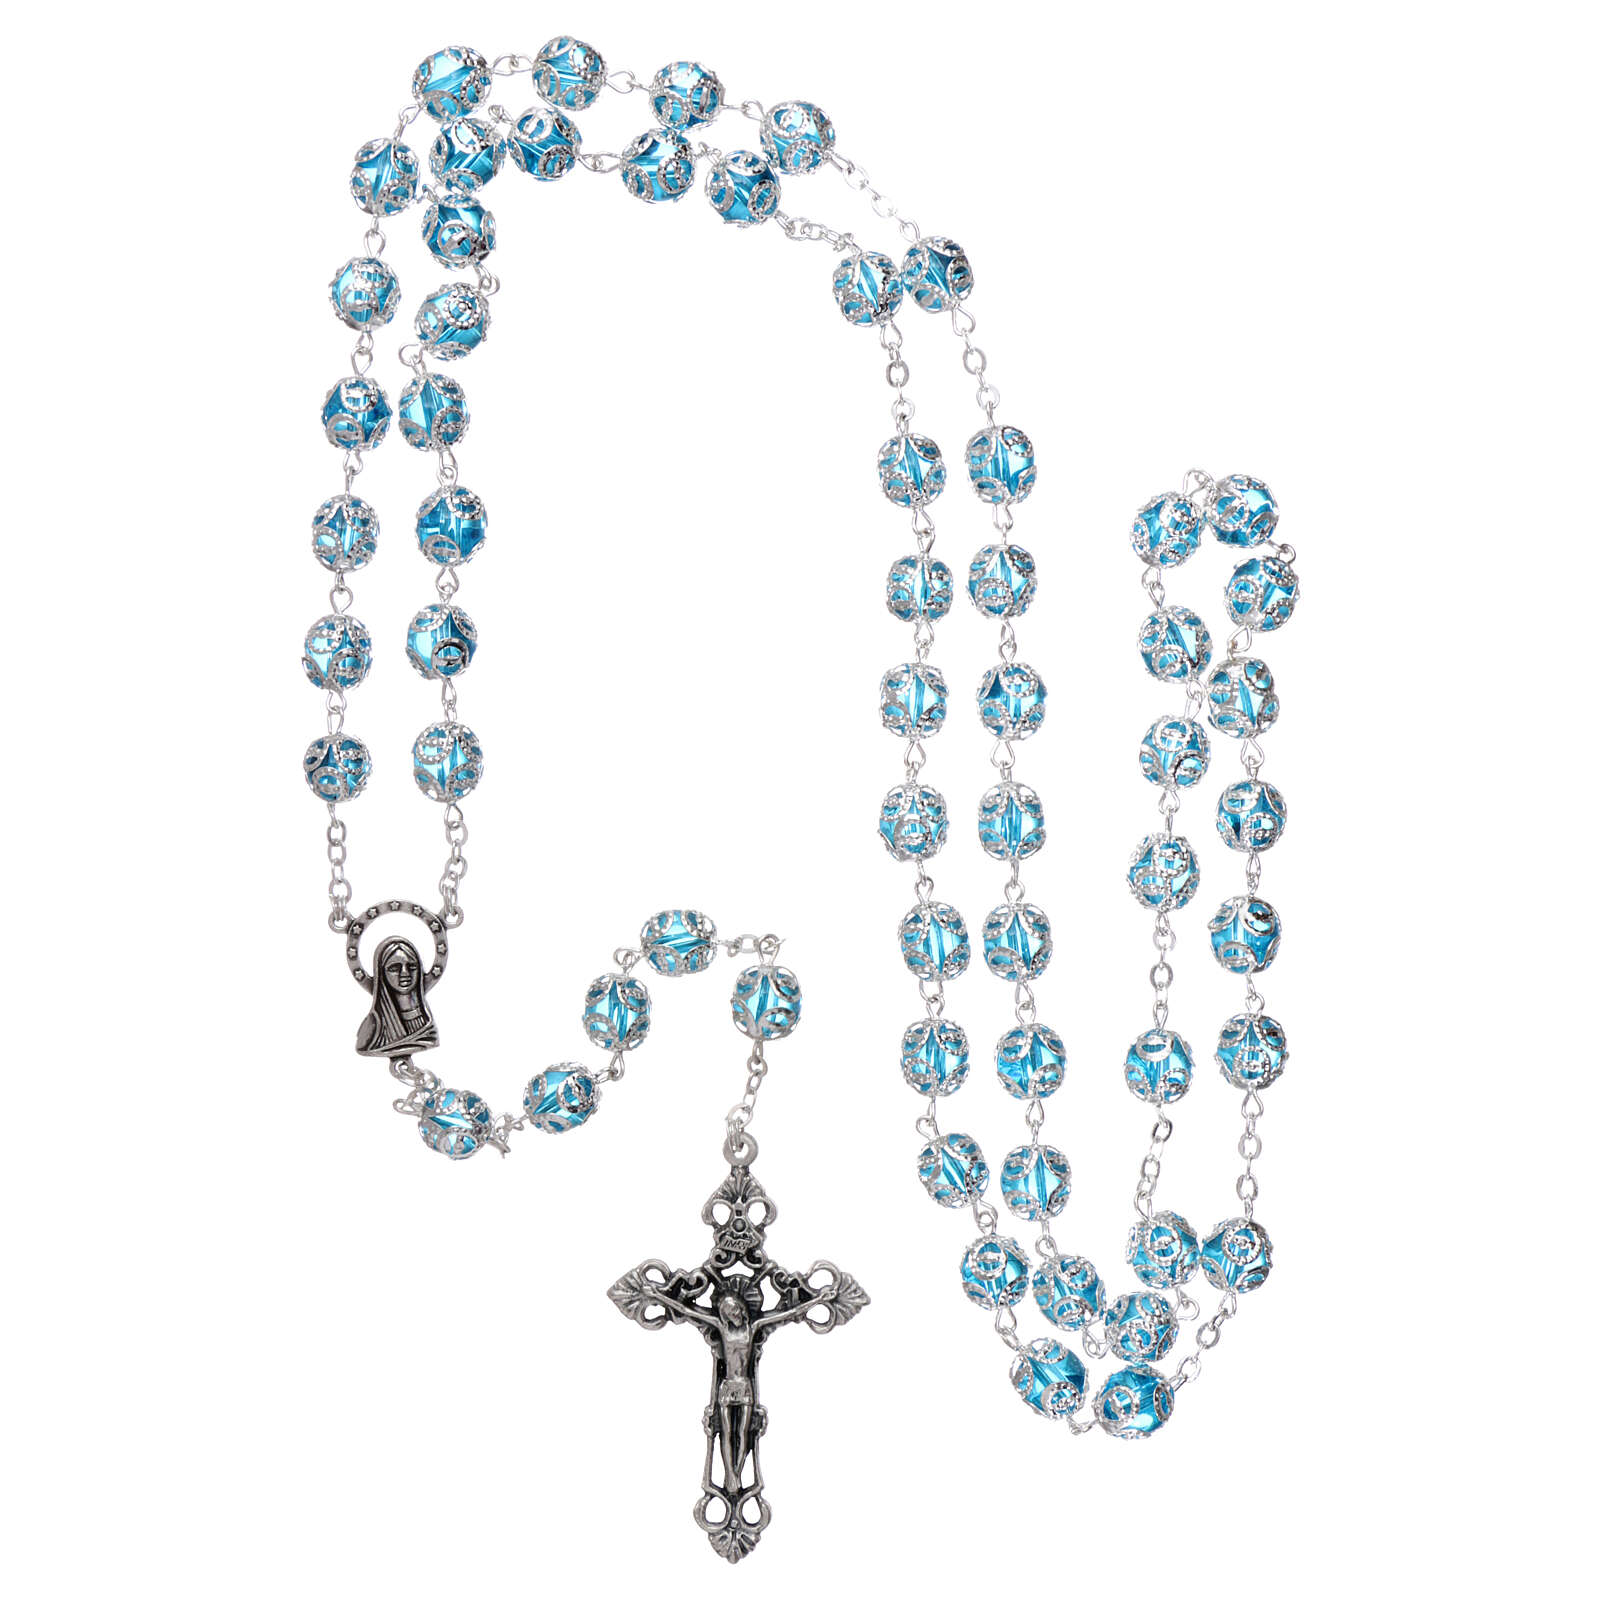 Glass rosary 7 mm water color 4